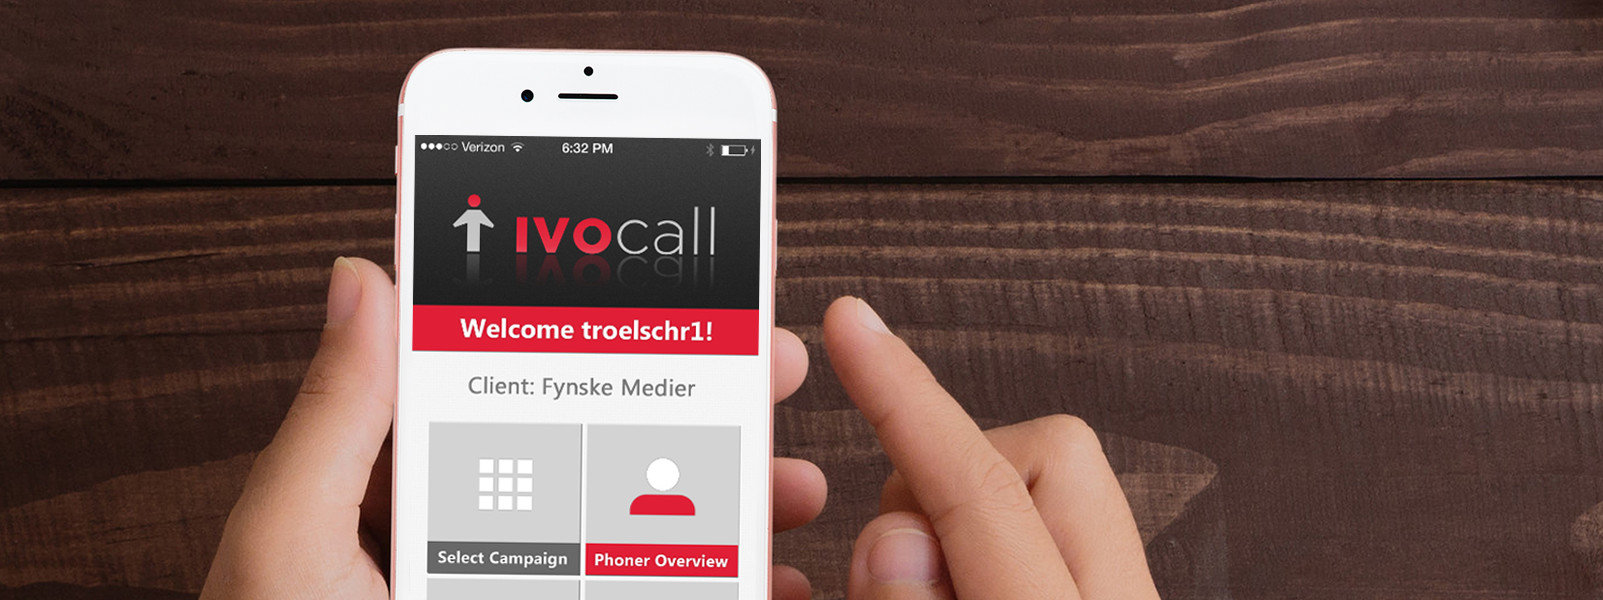 IvoCall Case Image